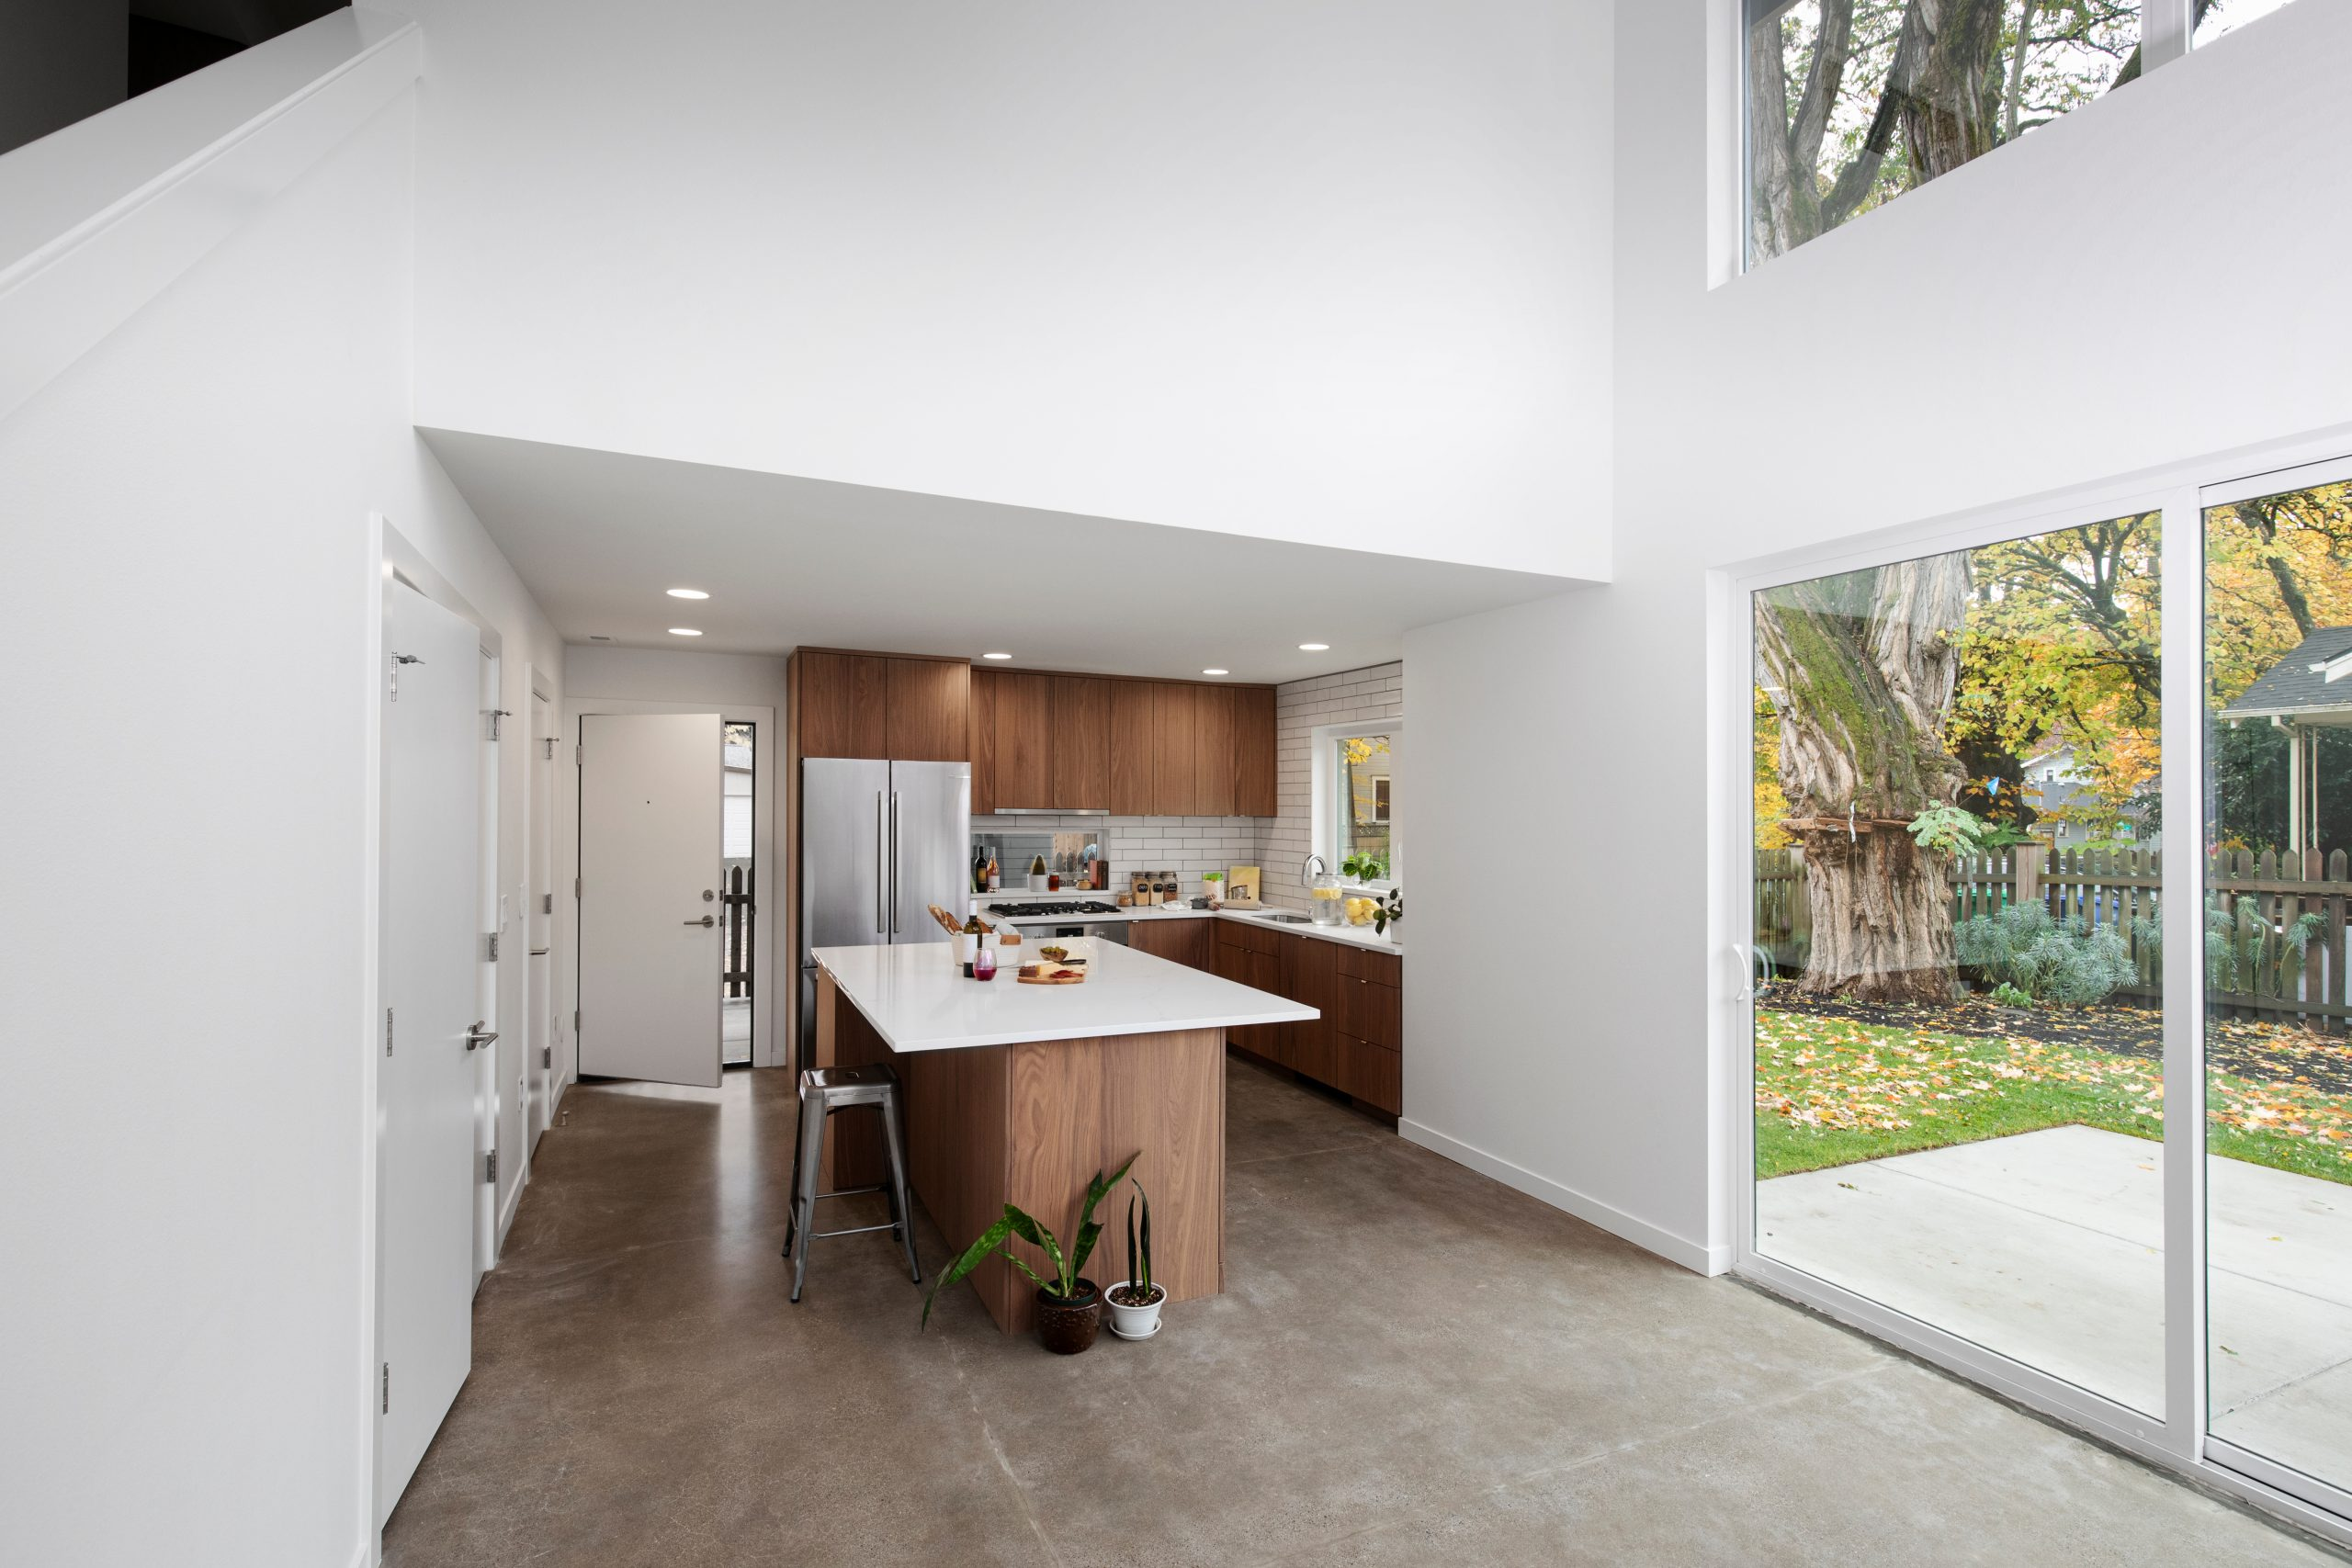 Modern,Kitchen,With,Lights,On,And,Daylight,Views.